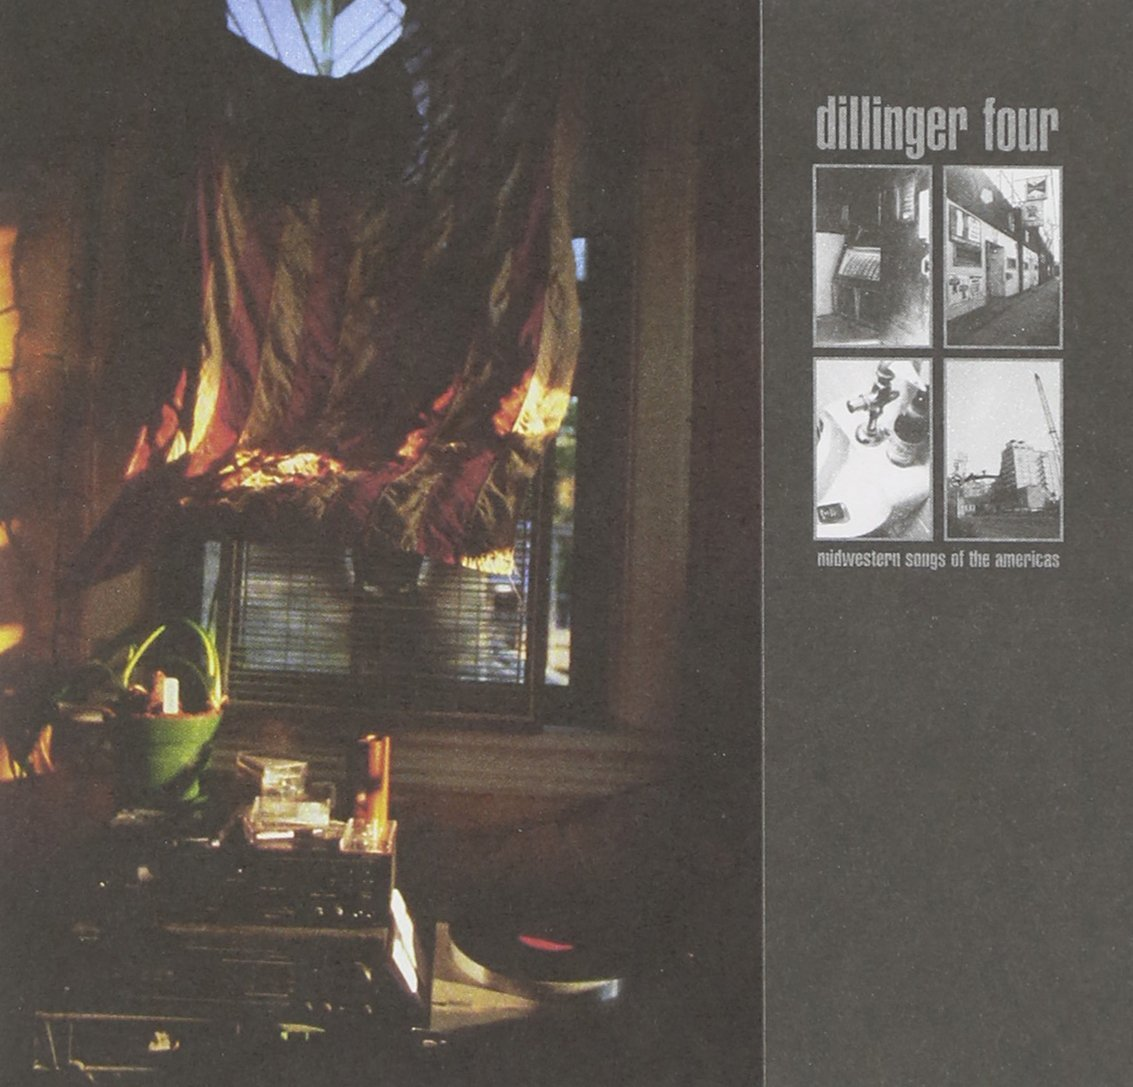 Dillinger Four - Midwestern Songs of The Americas LP